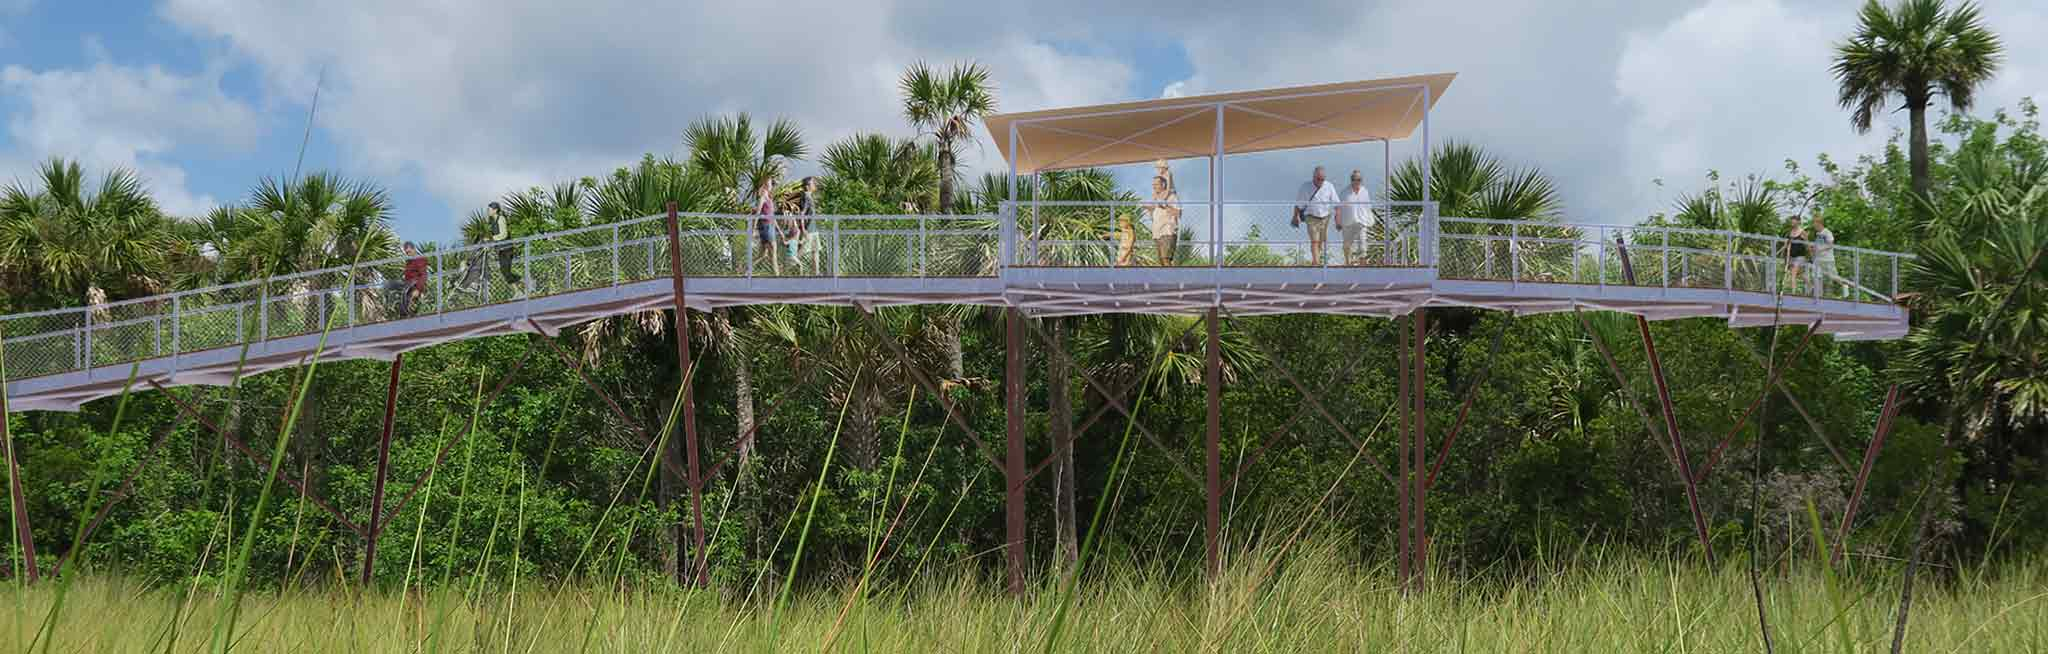 This rendering by Corban Architecture shows how an observation platform on a canopy walk could increase access for all.